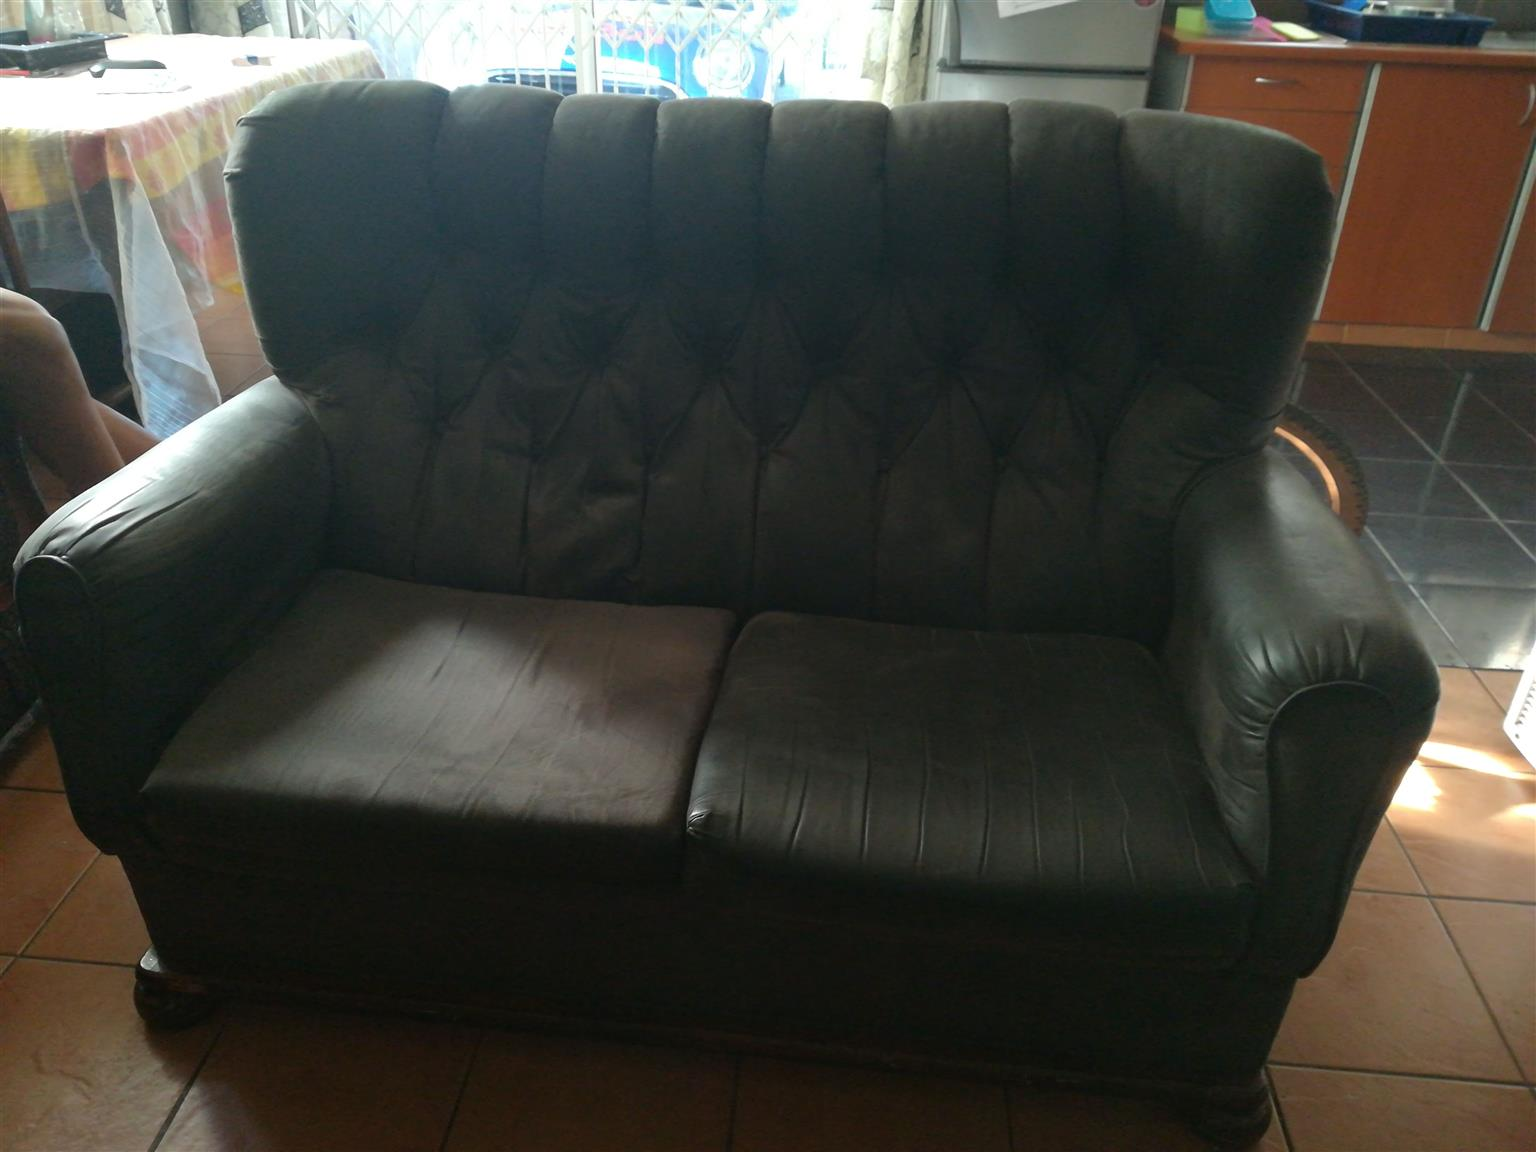 Beautiful good condition couches for only R1700